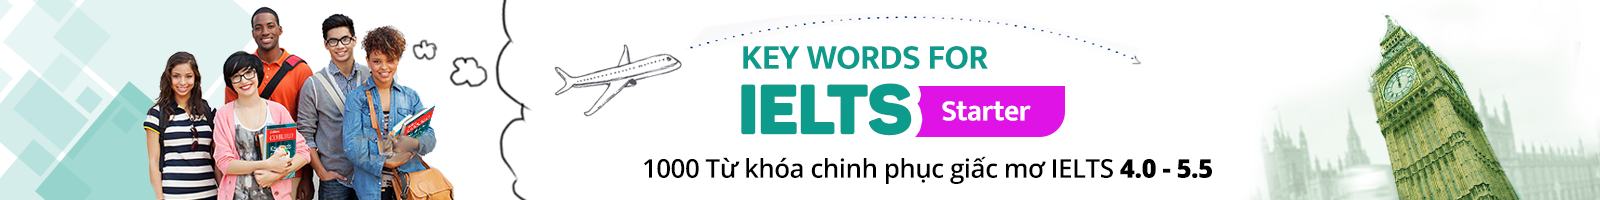 KEY WORDS FOR IELTS (Starter)